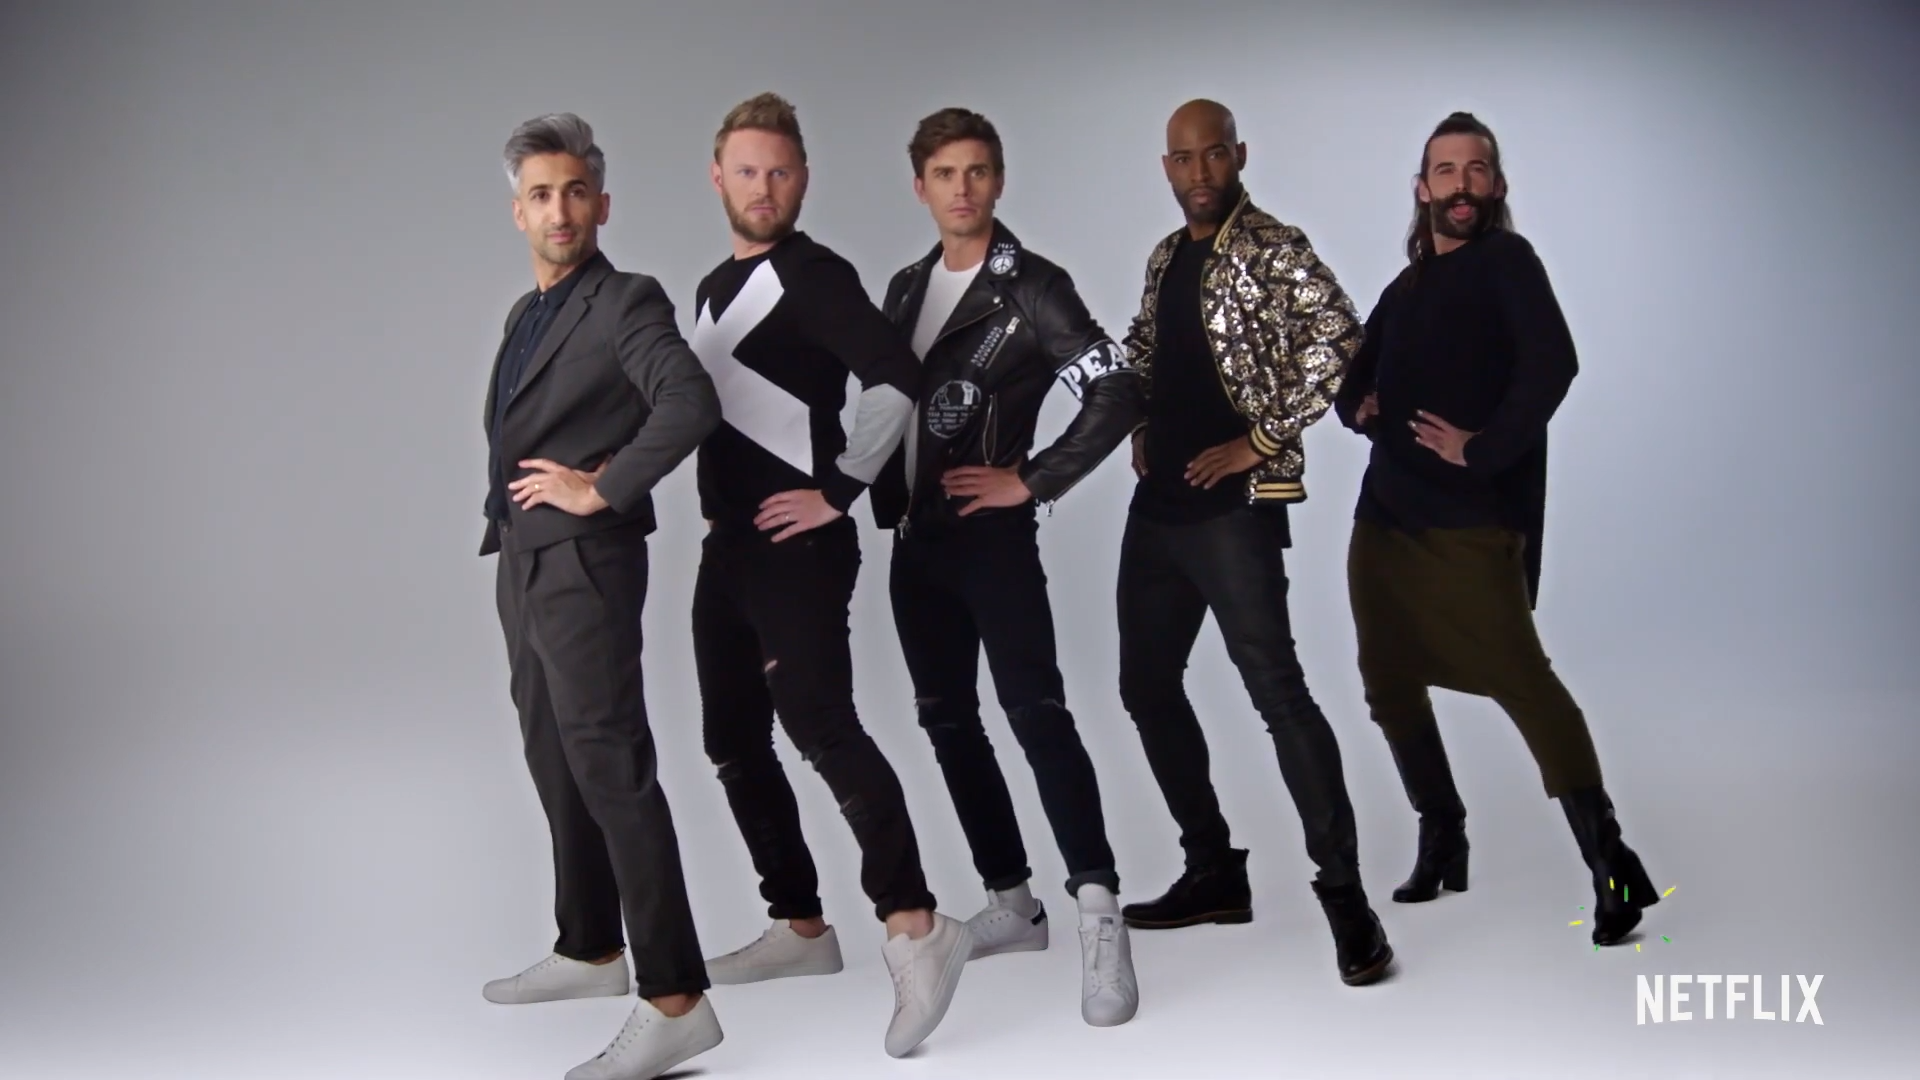 Netflix Confirms Seasons 4 & 5 of 'Queer Eye'